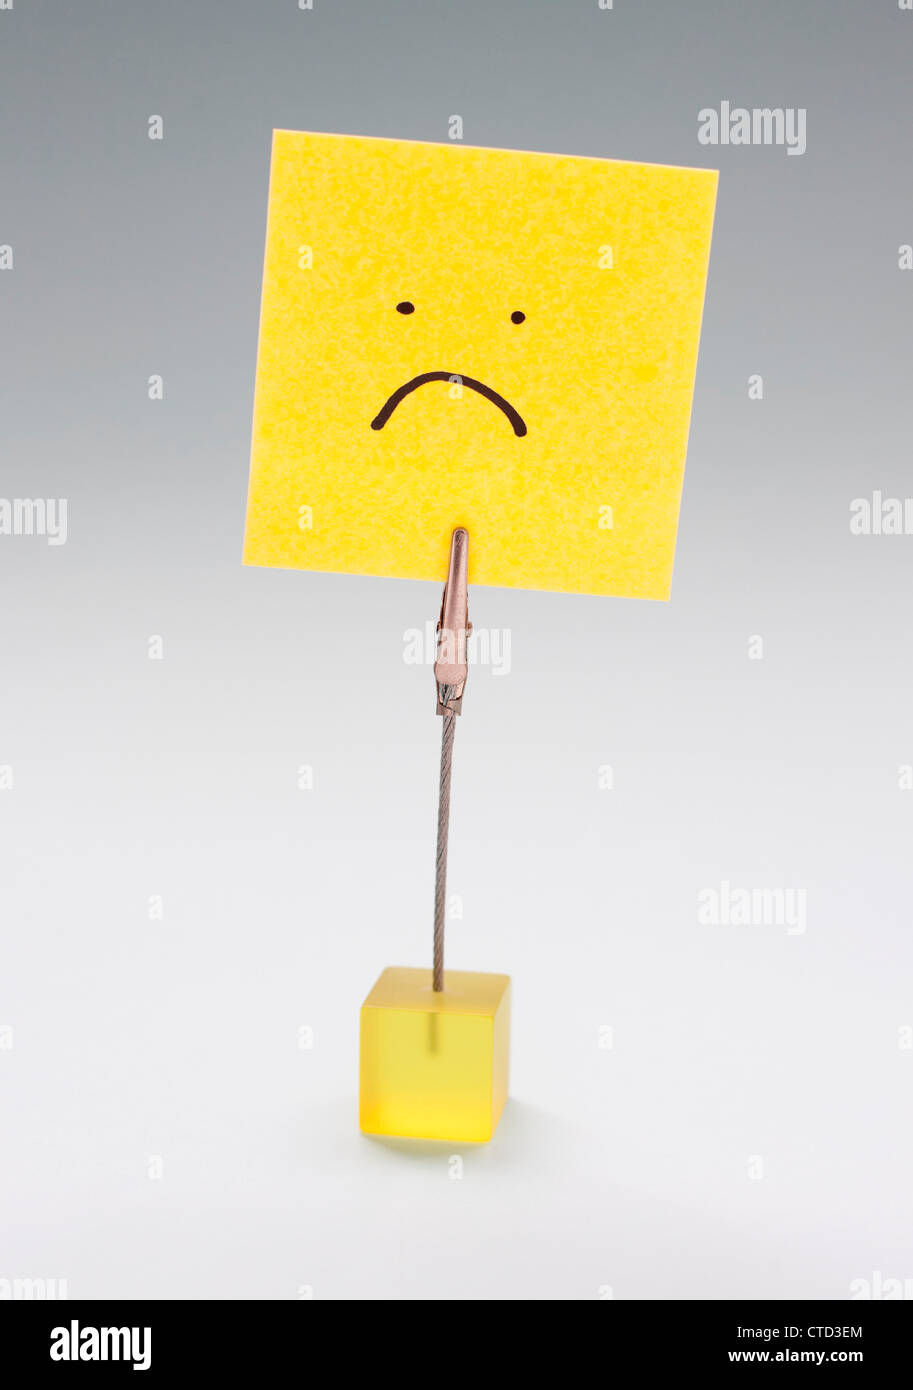 Unhappiness  conceptual image - Stock Image